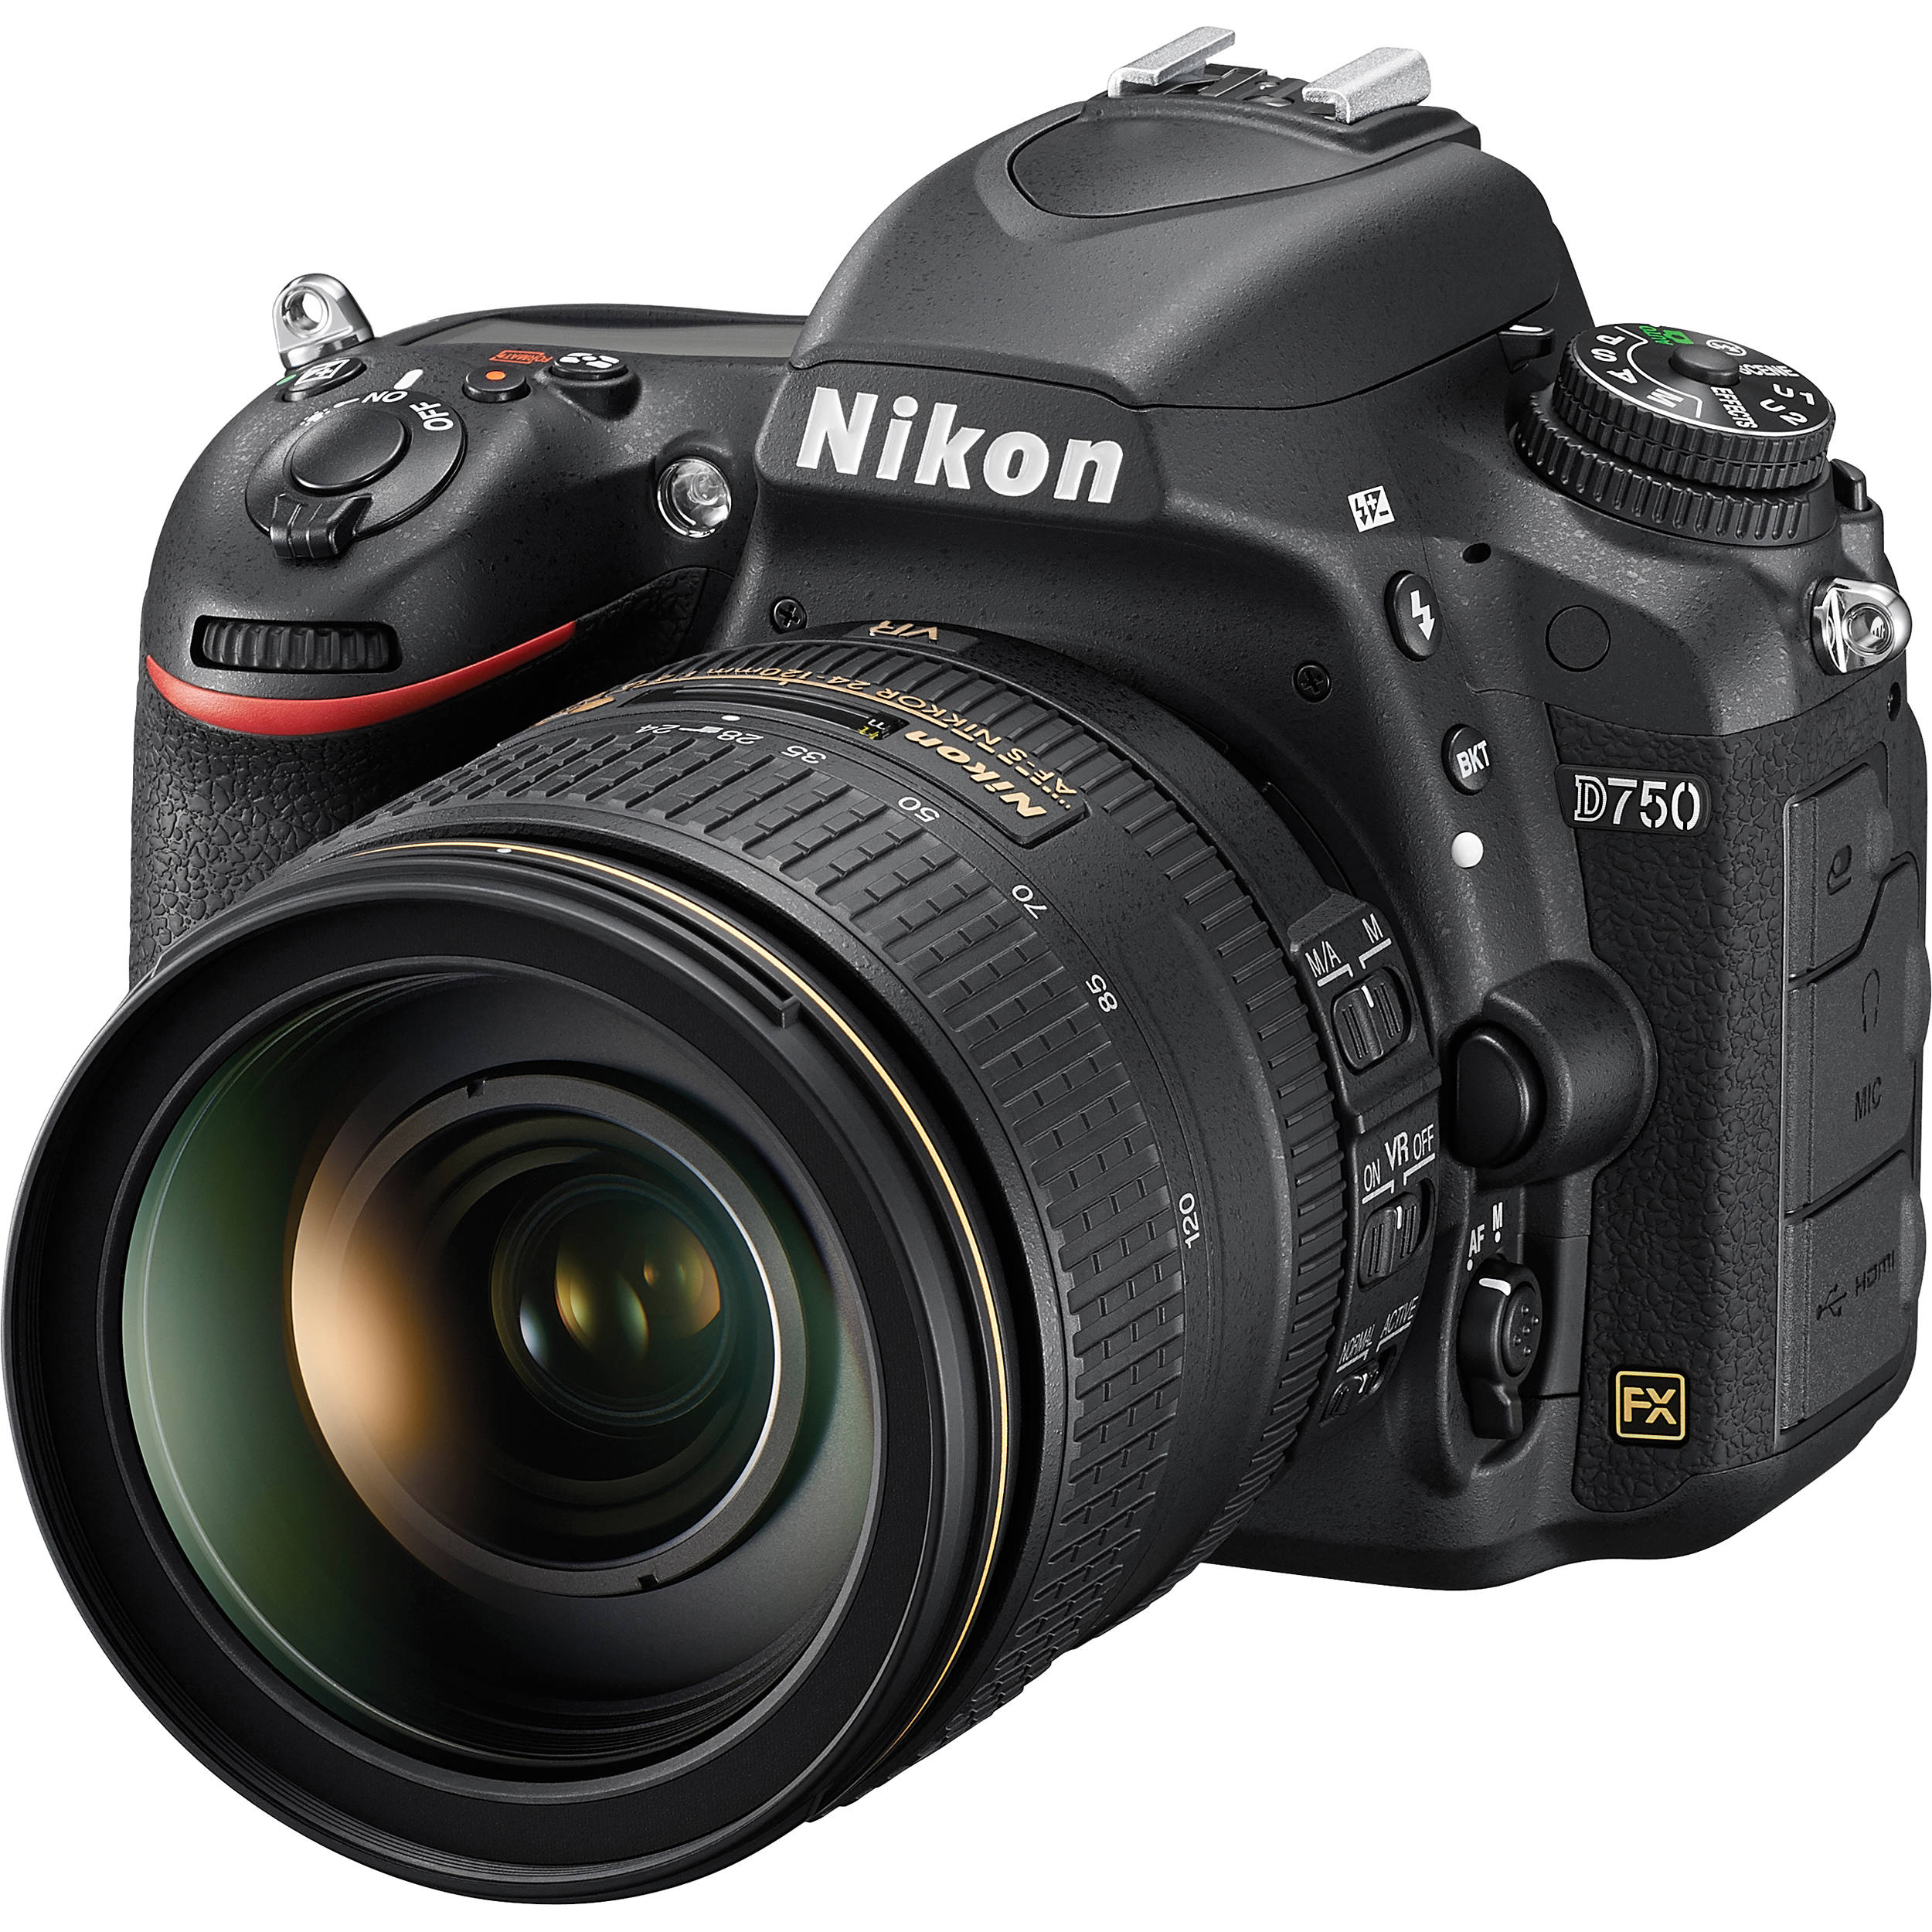 Nikon D750 DSLR Camera with 24-120mm Lens 1549 B&H Photo Video